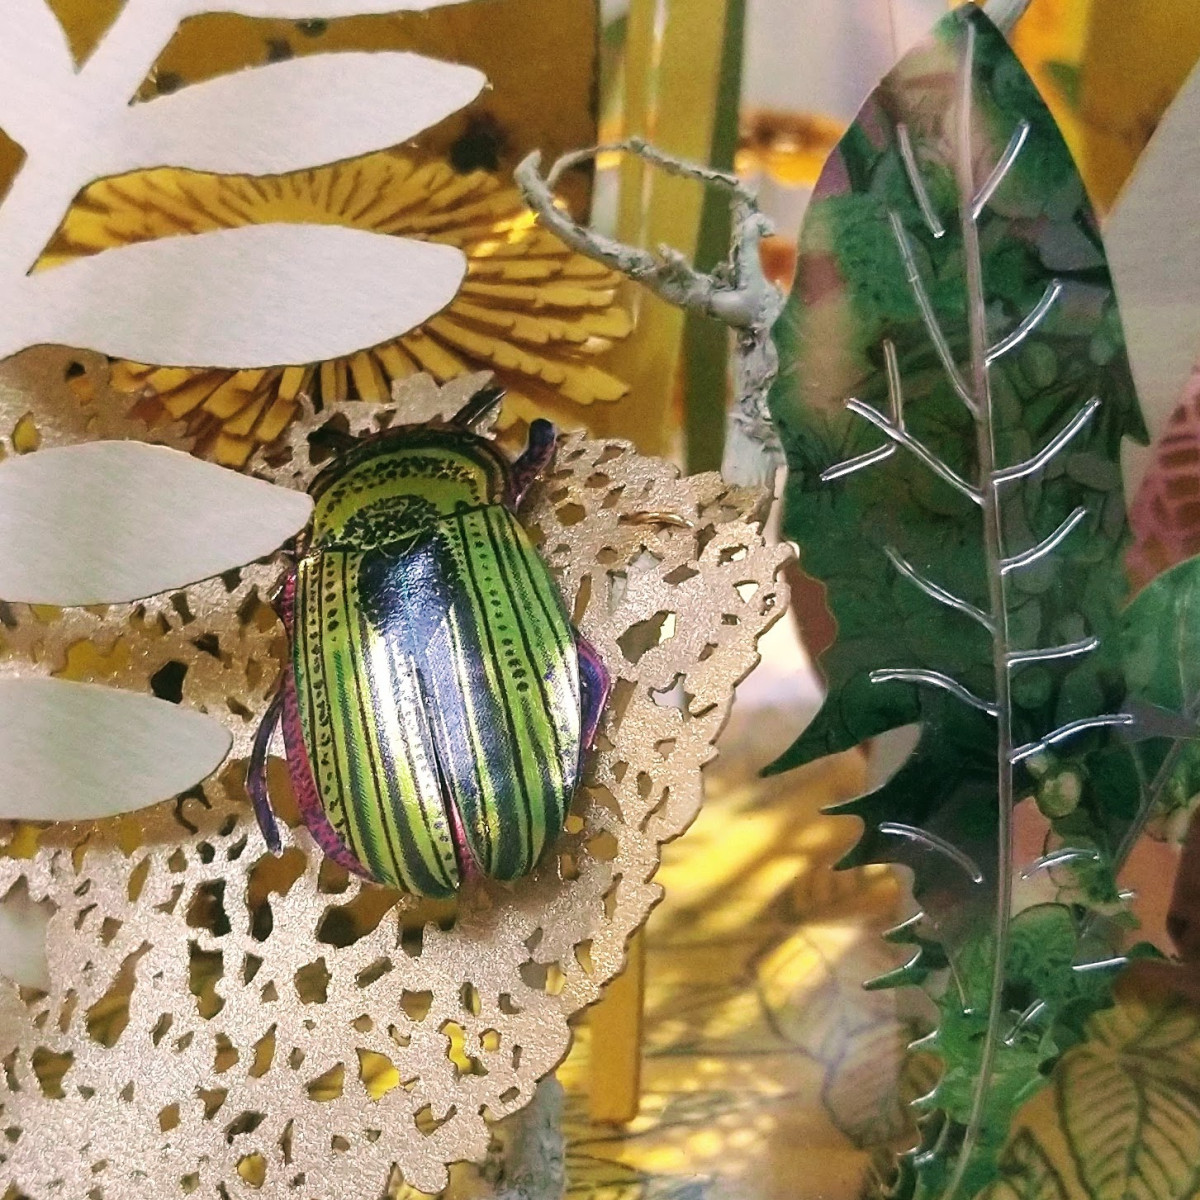 Detail from a Melanie Tomlinson work, showing a bright green metalwork beetle among stylised cutout metal foliage.